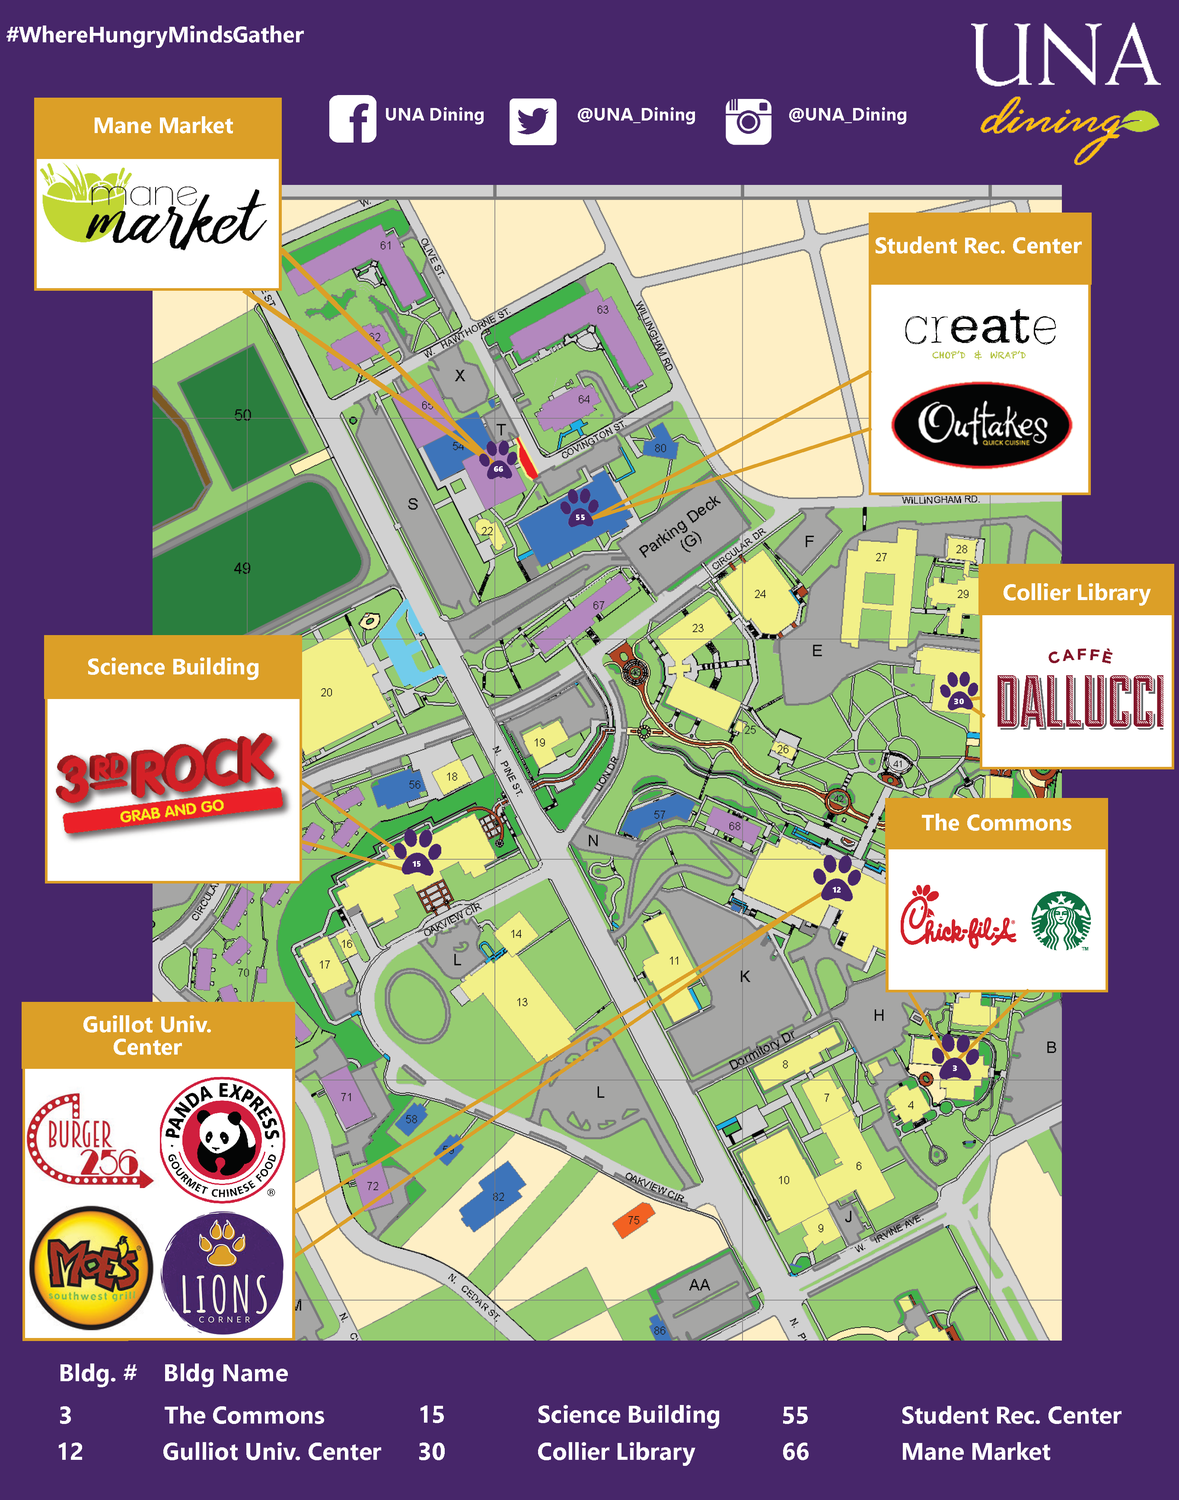 university of north alabama campus map Dine On Campus At University Of North Alabama Dining Locations